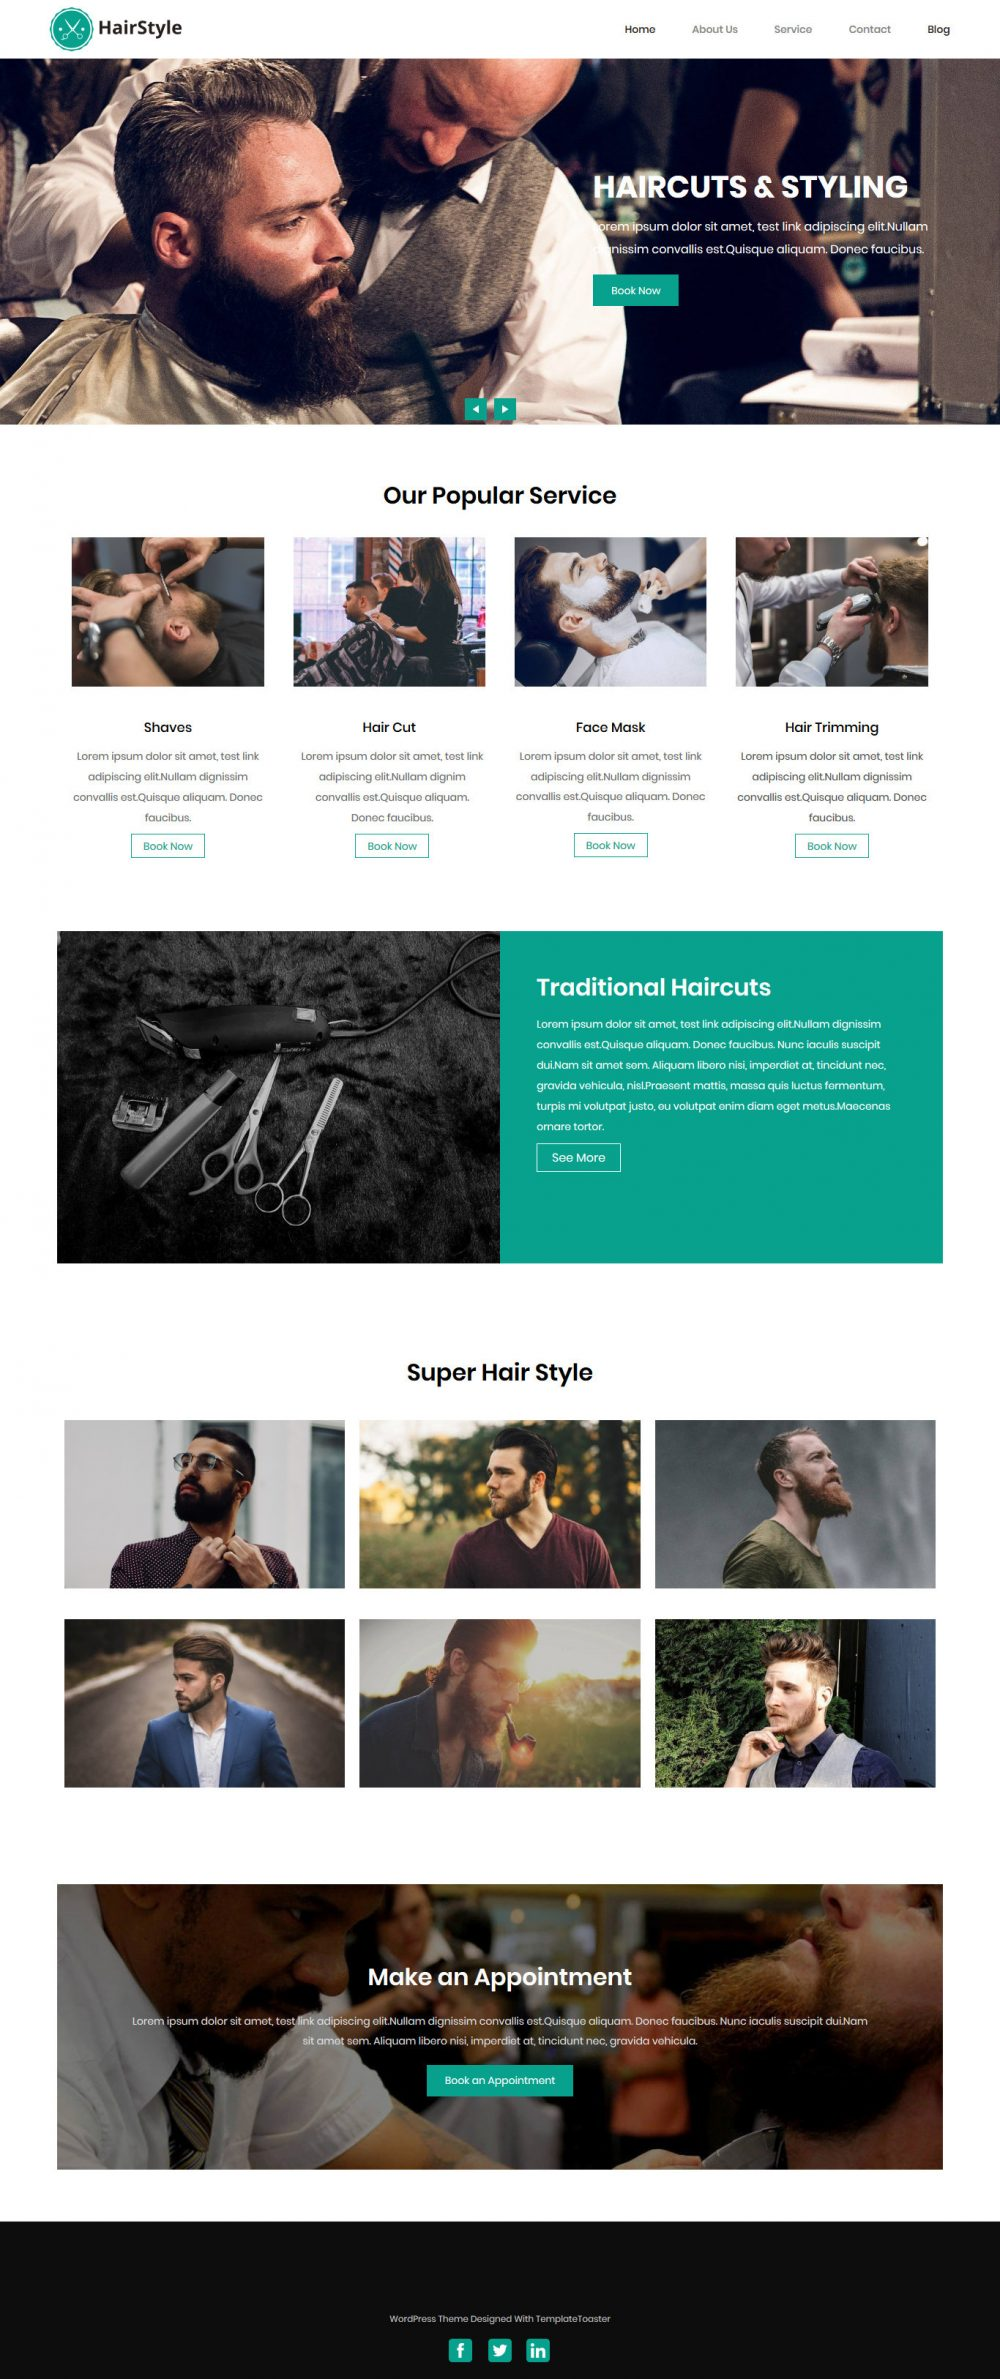 HairStyle Barber Shop HTML Template